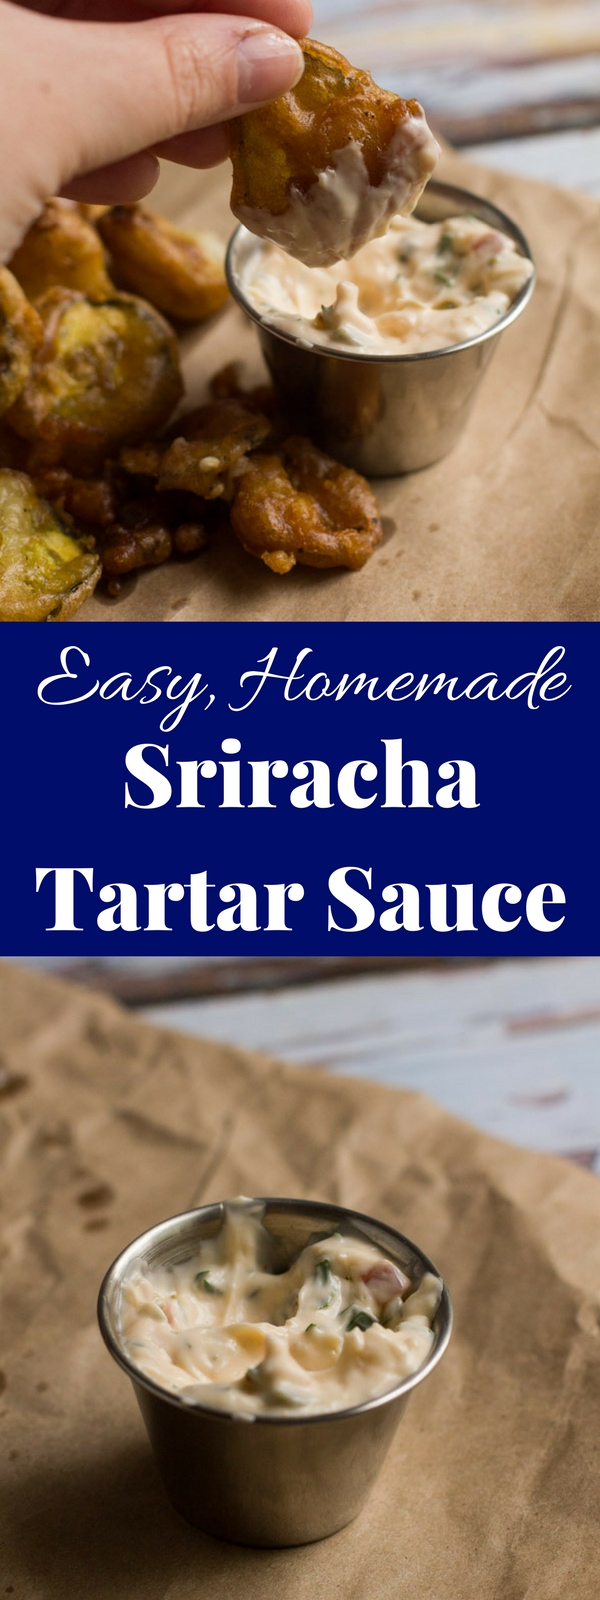 An easy and delicious homemade sriracha tartar sauce with a fresh, bold flavor. Who knew making it from scratch could be so easy!